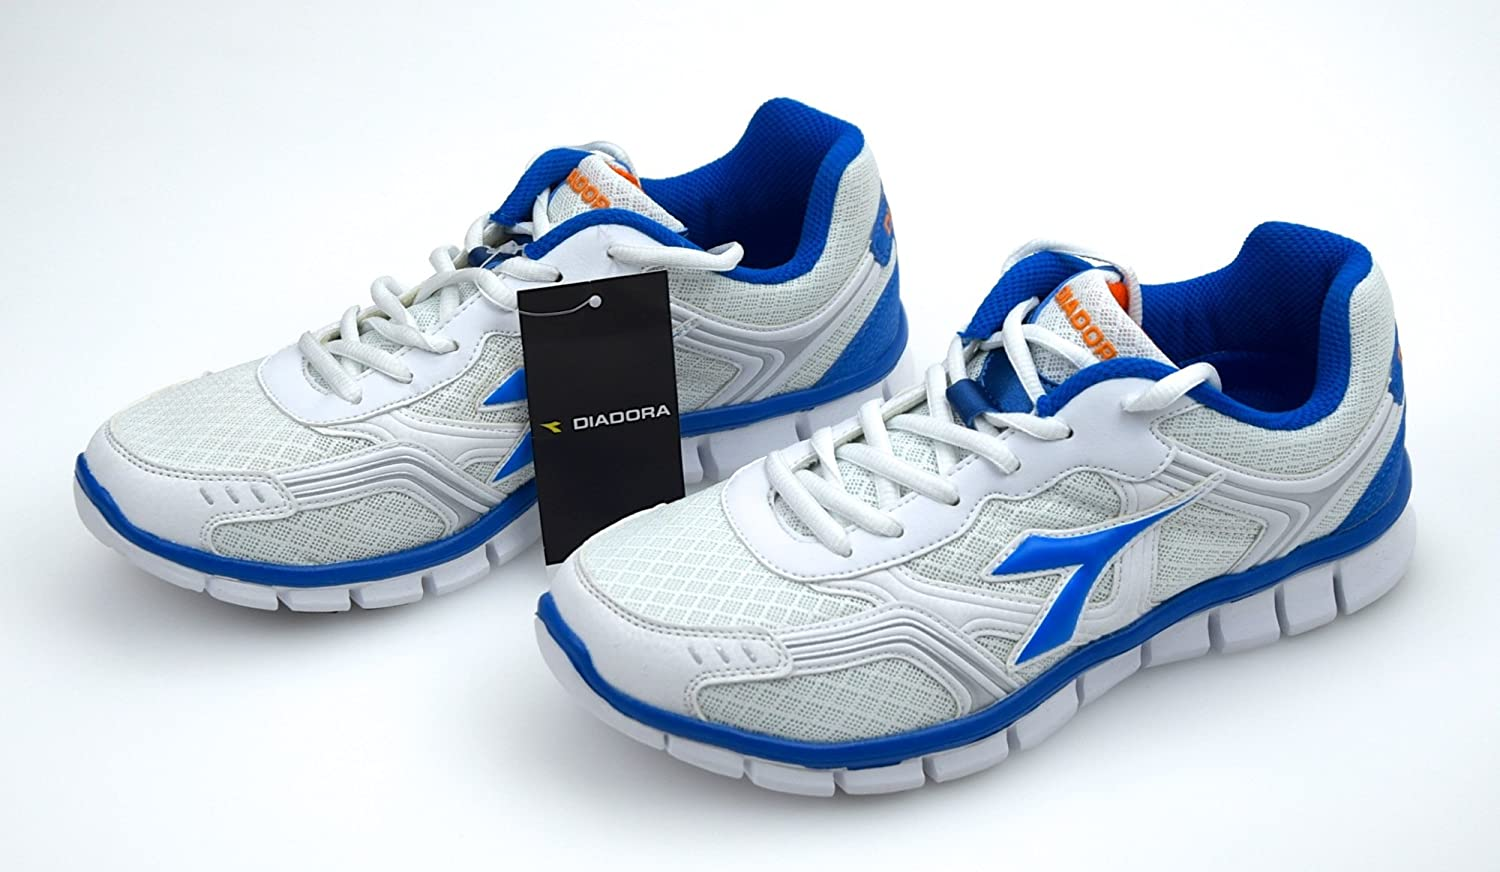 DIADORA SCARPA SNEAKER FITNESS DONNA ART. BLUE DINAMIK II 158156 BIANCO BLU METAL WHITE BLUE ART. METAL d843f3